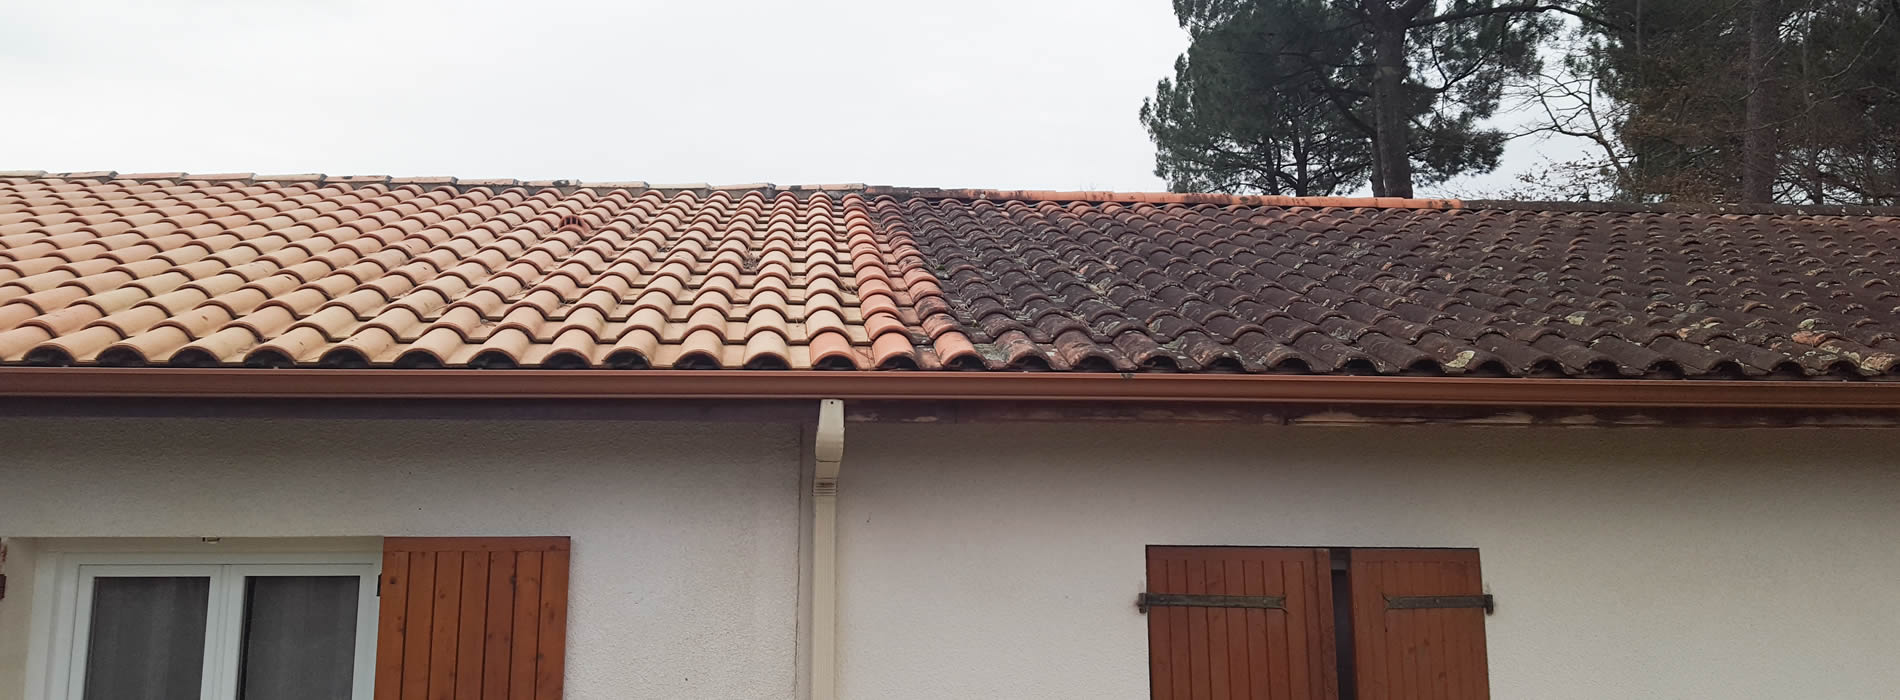 Roof Repair Professional Cleaning Tacoma Wa Roof Repair Services